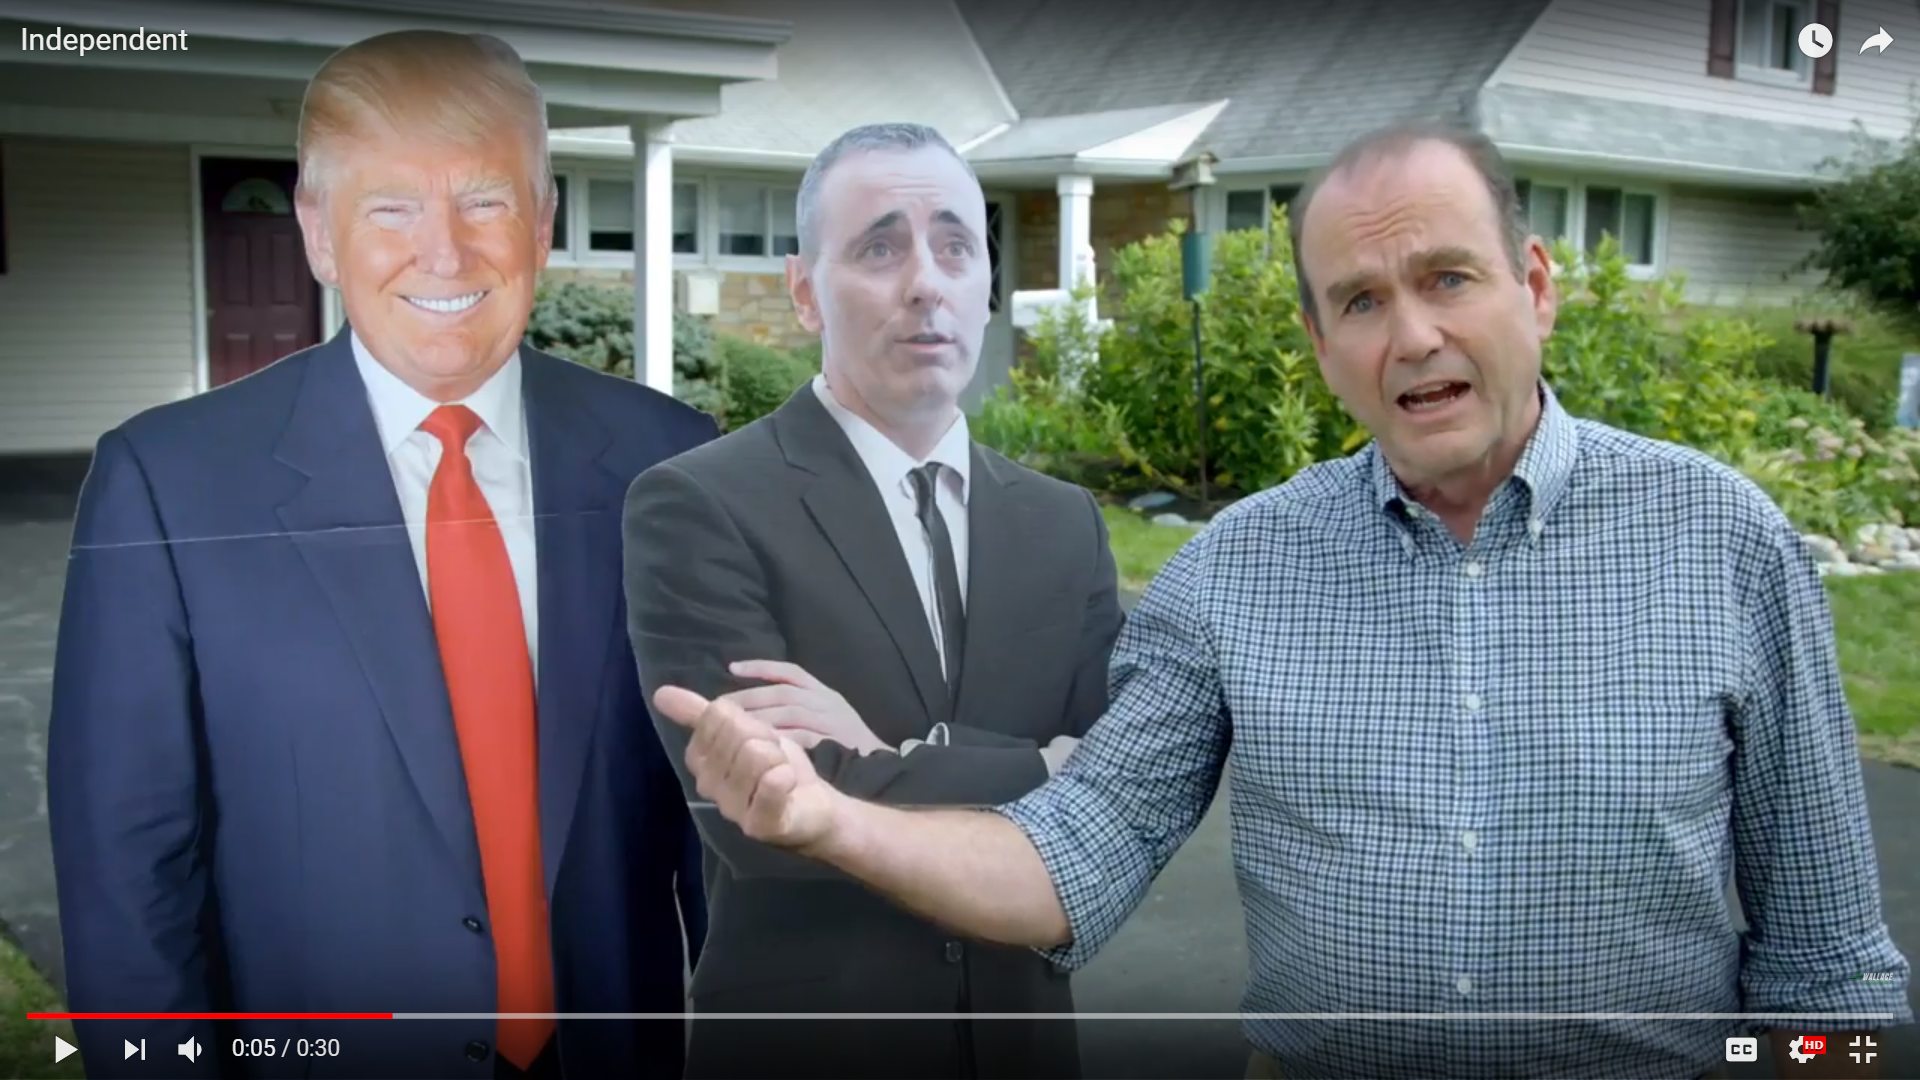 In this campaign ad, Democratic candidate for Congress Scott Wallace stands next to cutouts of Republican President Donald Trump and Republican Congressman Brian Fitzpatrick.